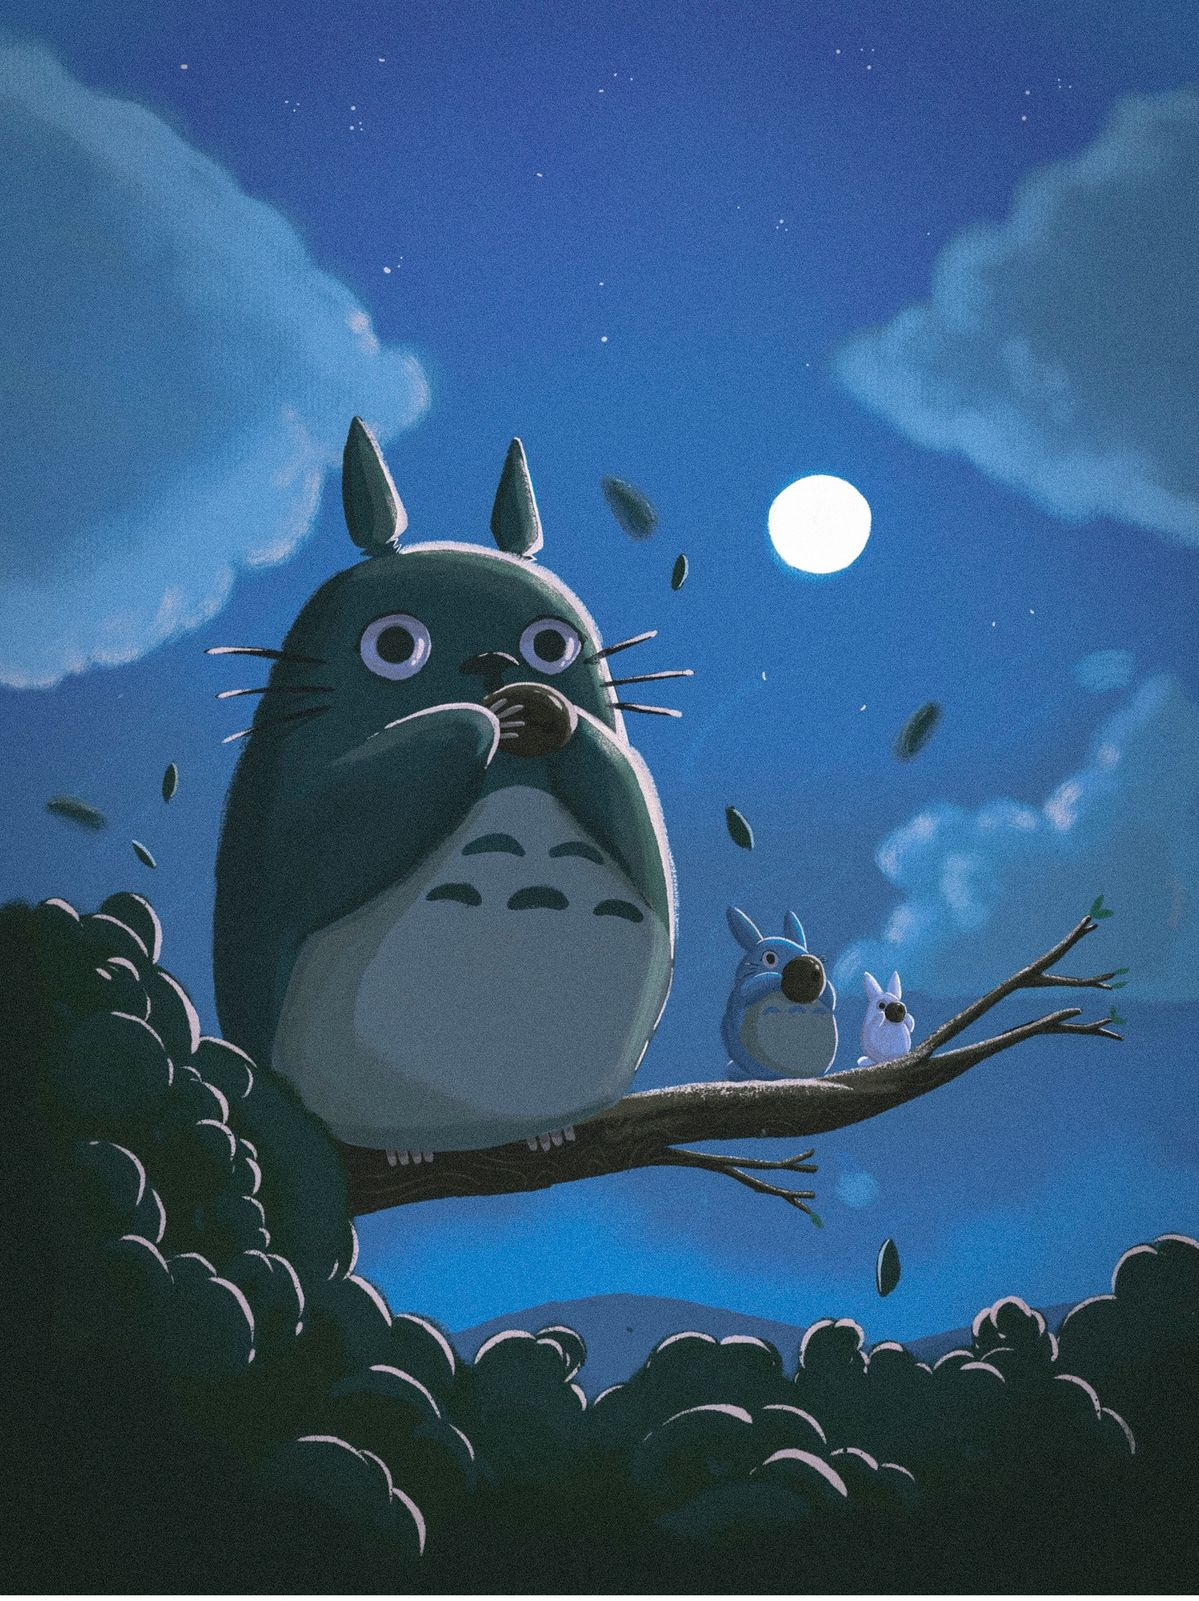 A tribute to the beloved animation studio Studio Ghibli by Erika Montalvo and Pequeño Capitan.